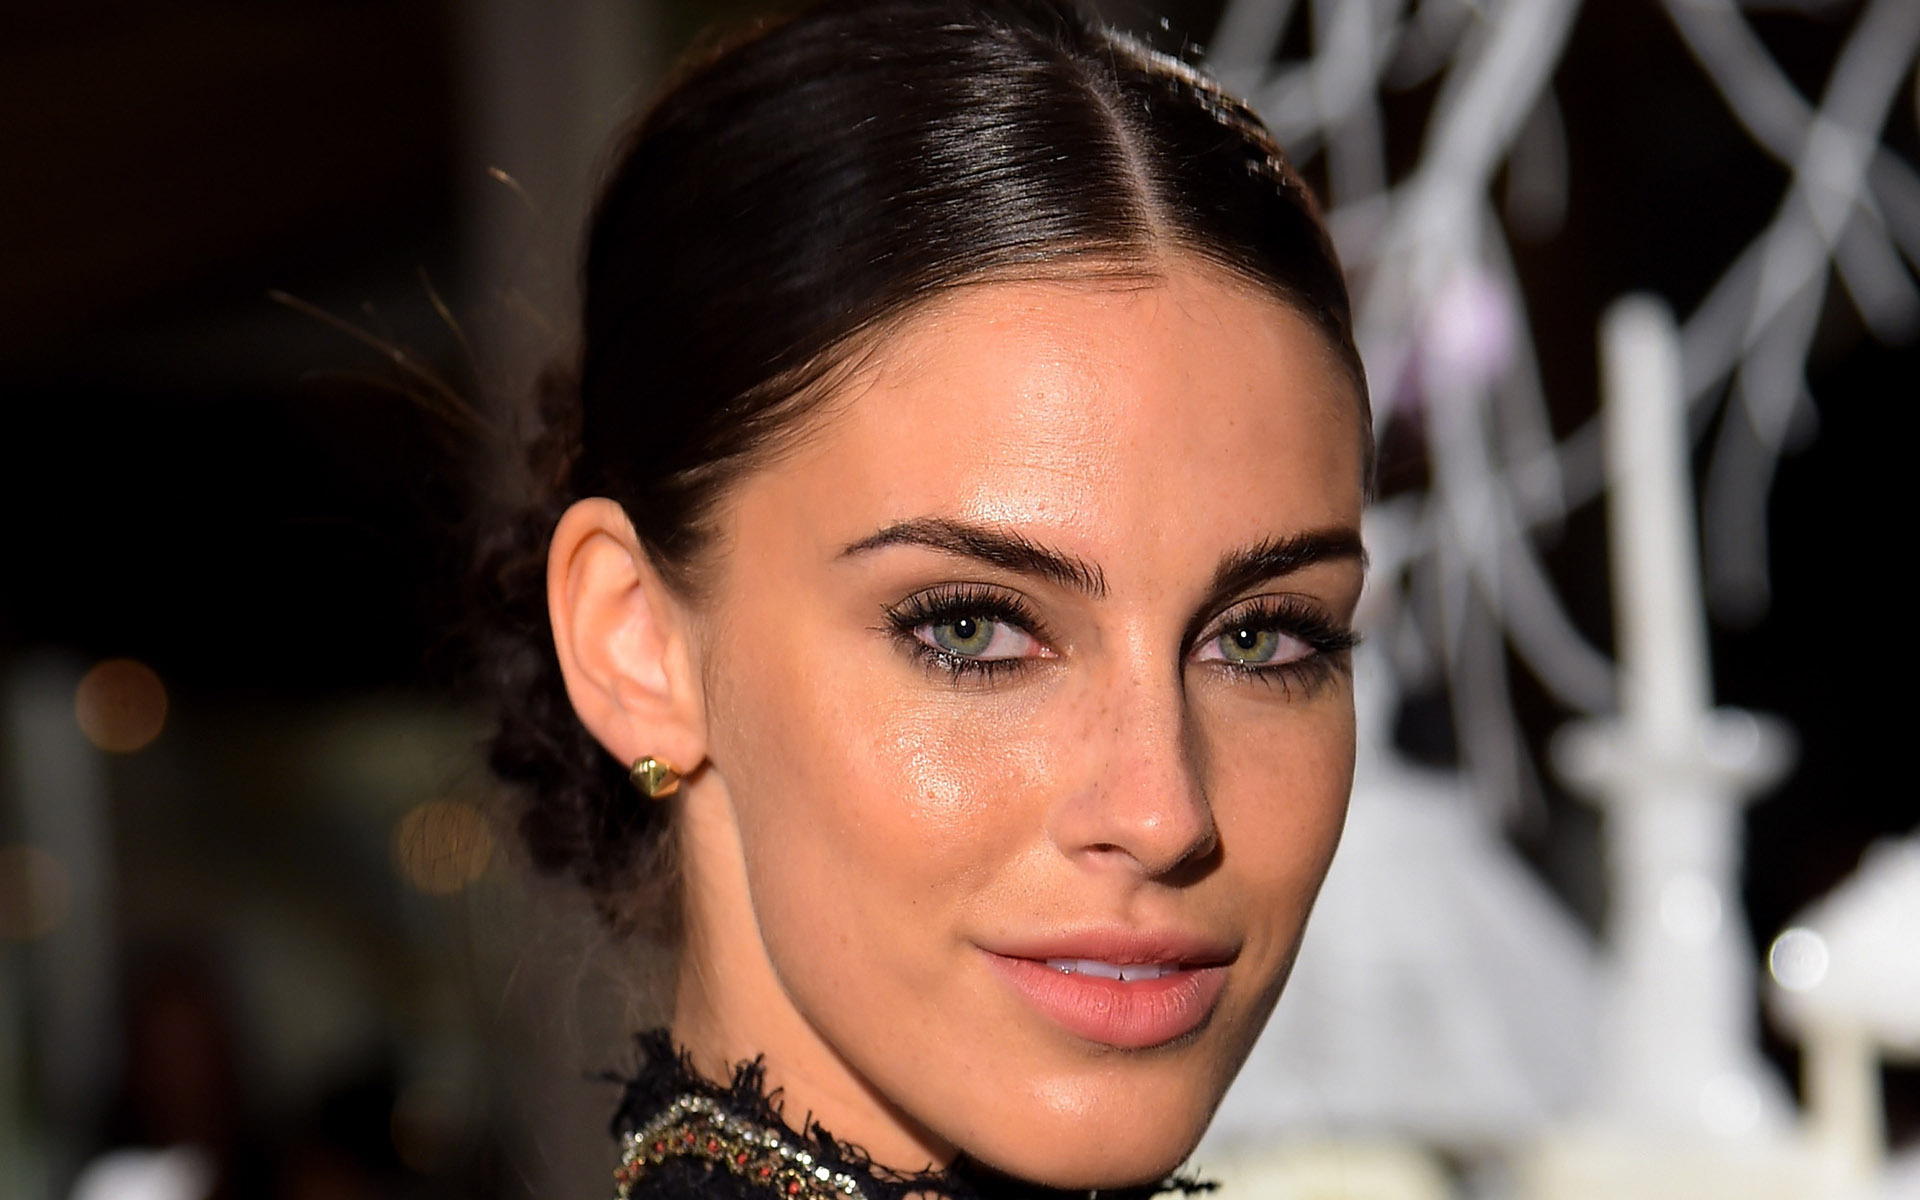 1920x1200 - Jessica Lowndes Wallpapers 28